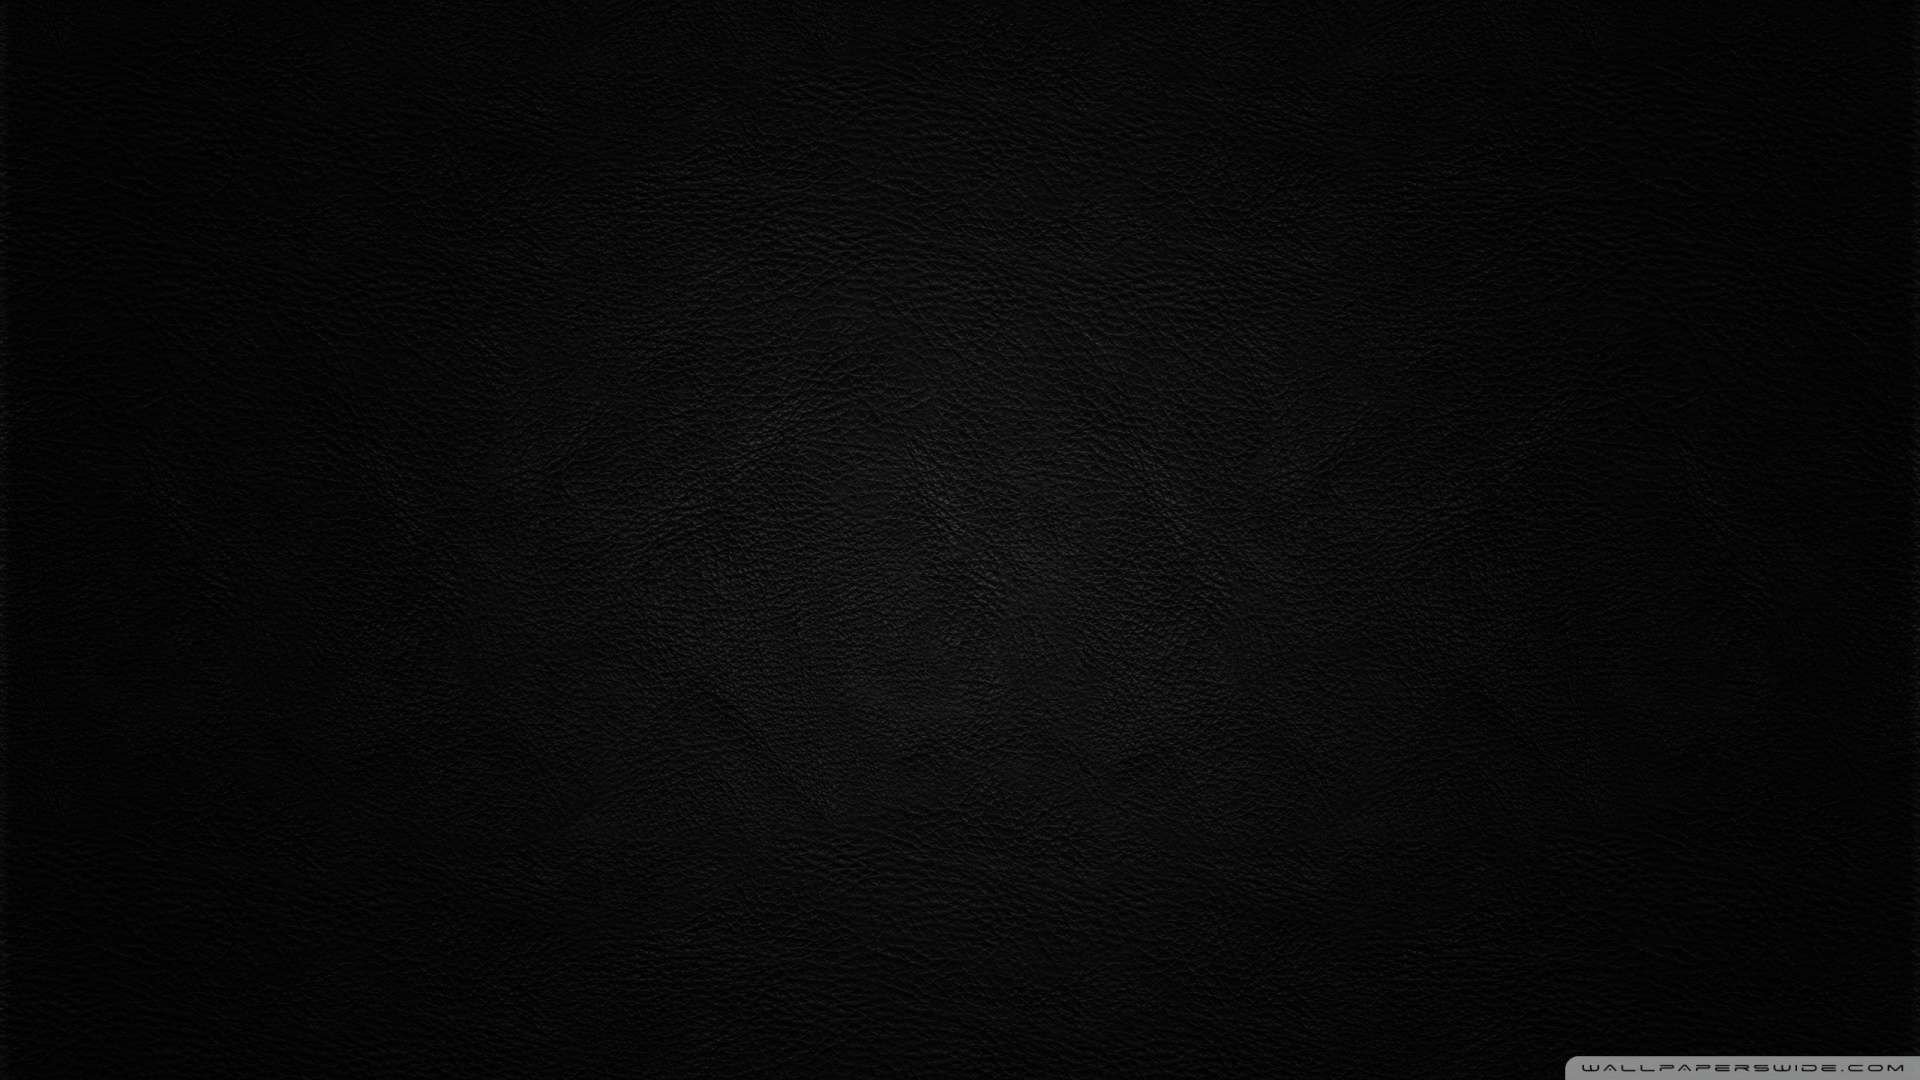 47 Black Wallpaper Hd 1080p On Wallpapersafari